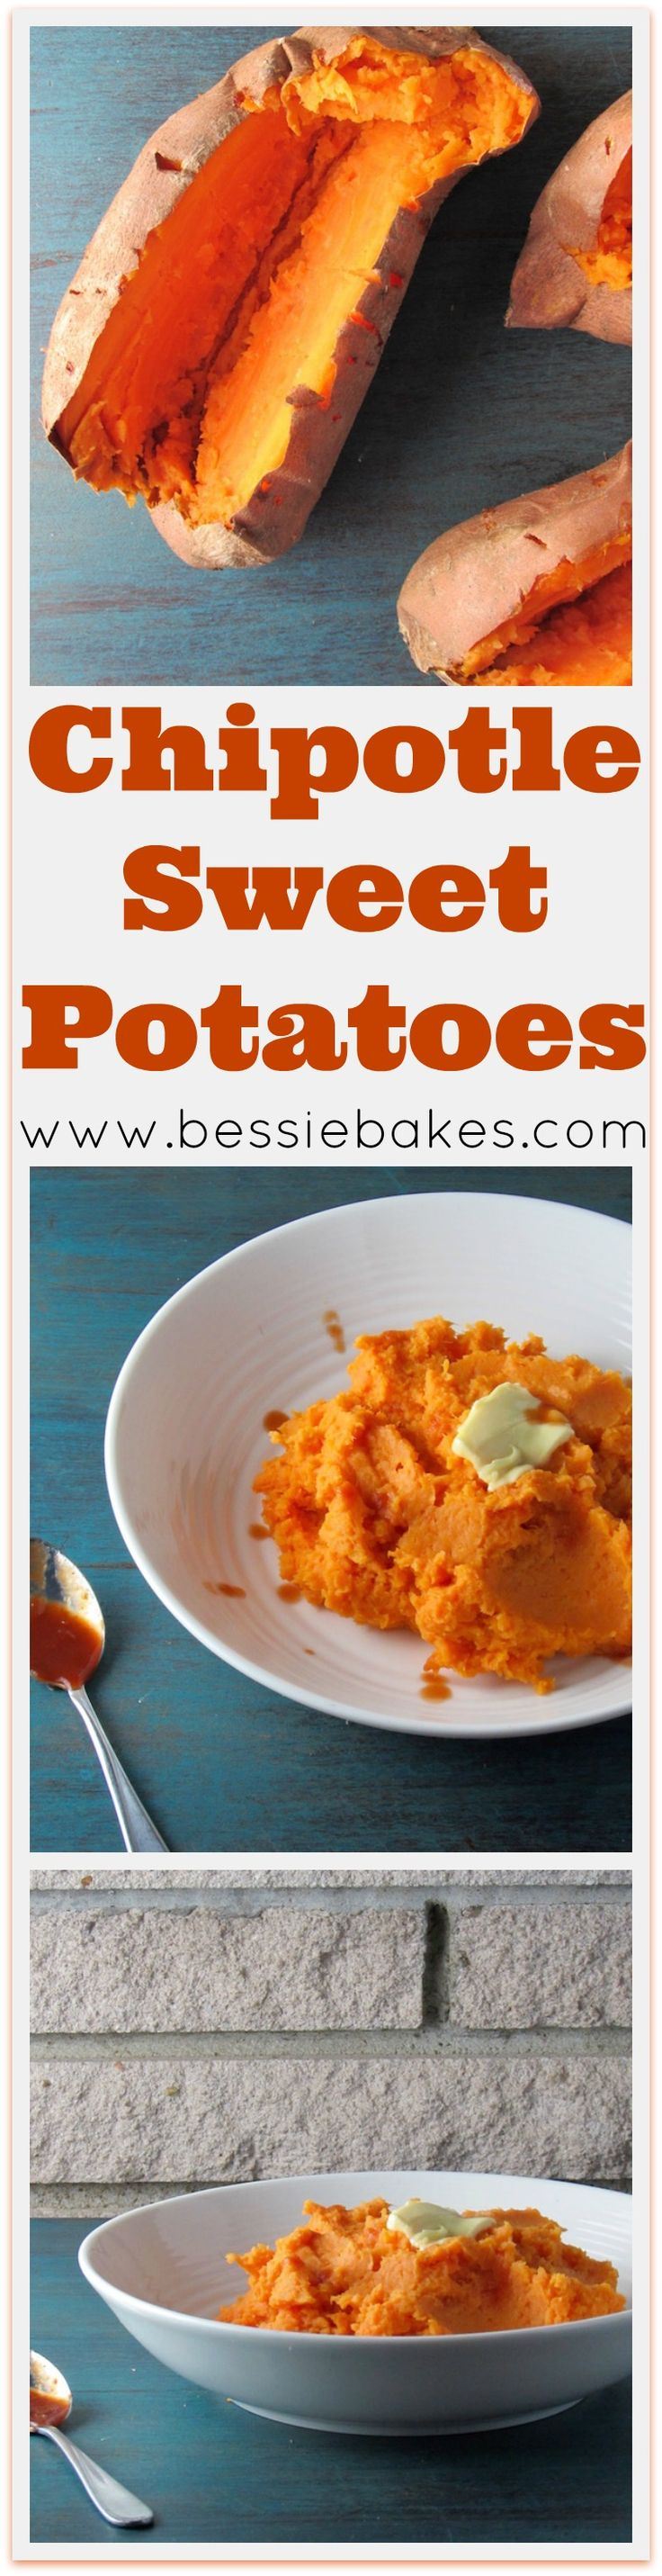 Chipotle Sweet Potatoes | Recipe | Chipotle, Dishes and